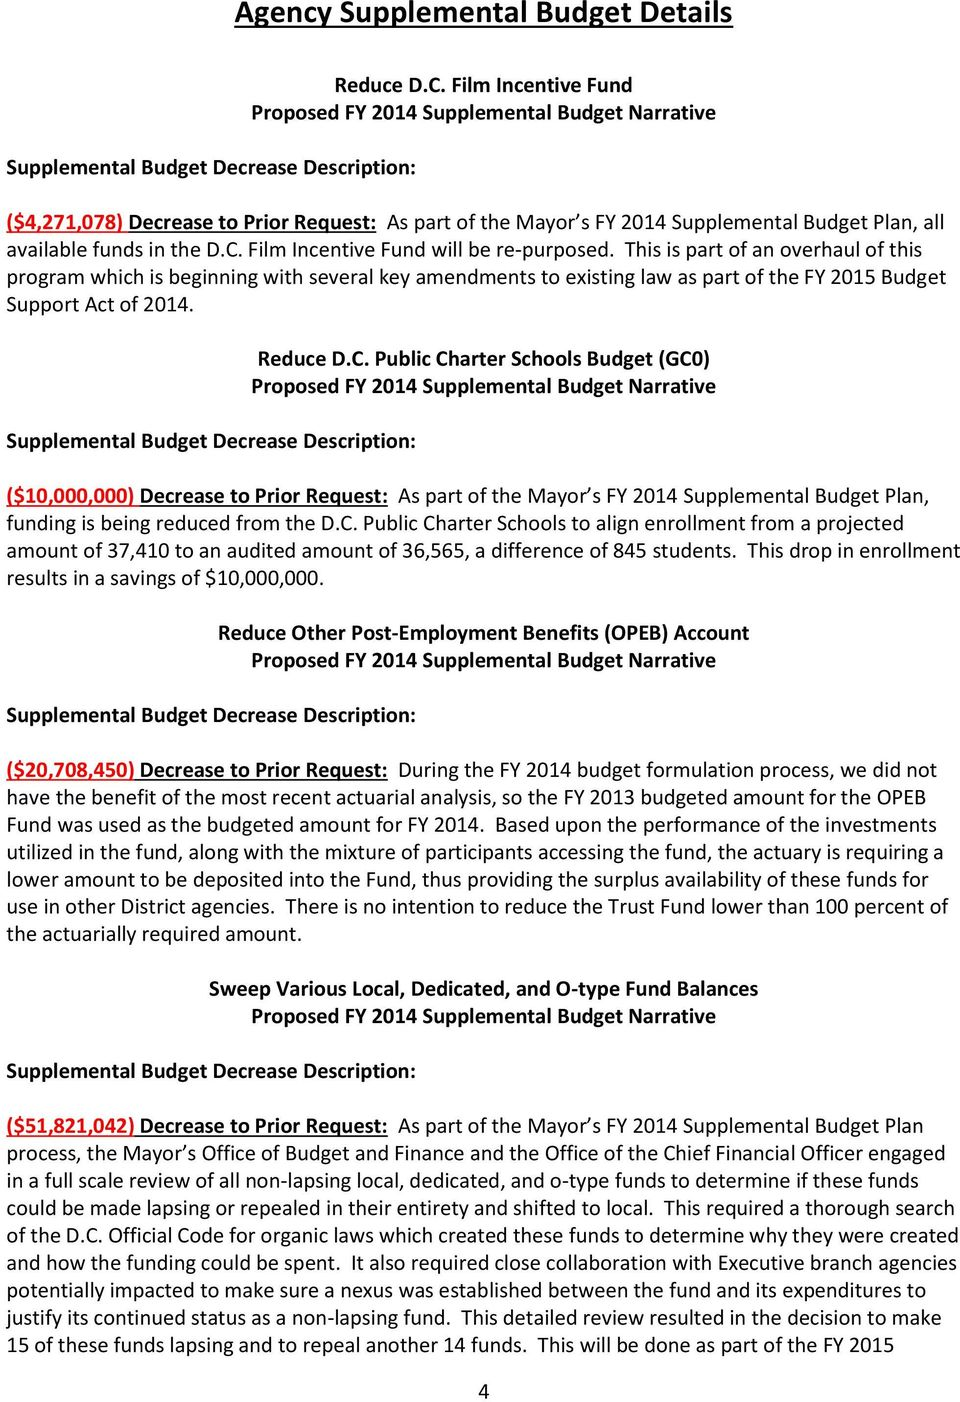 Public Charter Schools Budget (GC0) ($10,000,000) Decrease to Prior Request: As part of the Mayor s FY 2014 Supplemental Budget Plan, funding is being reduced from the D.C. Public Charter Schools to align enrollment from a projected amount of 37,410 to an audited amount of 36,565, a difference of 845 students.